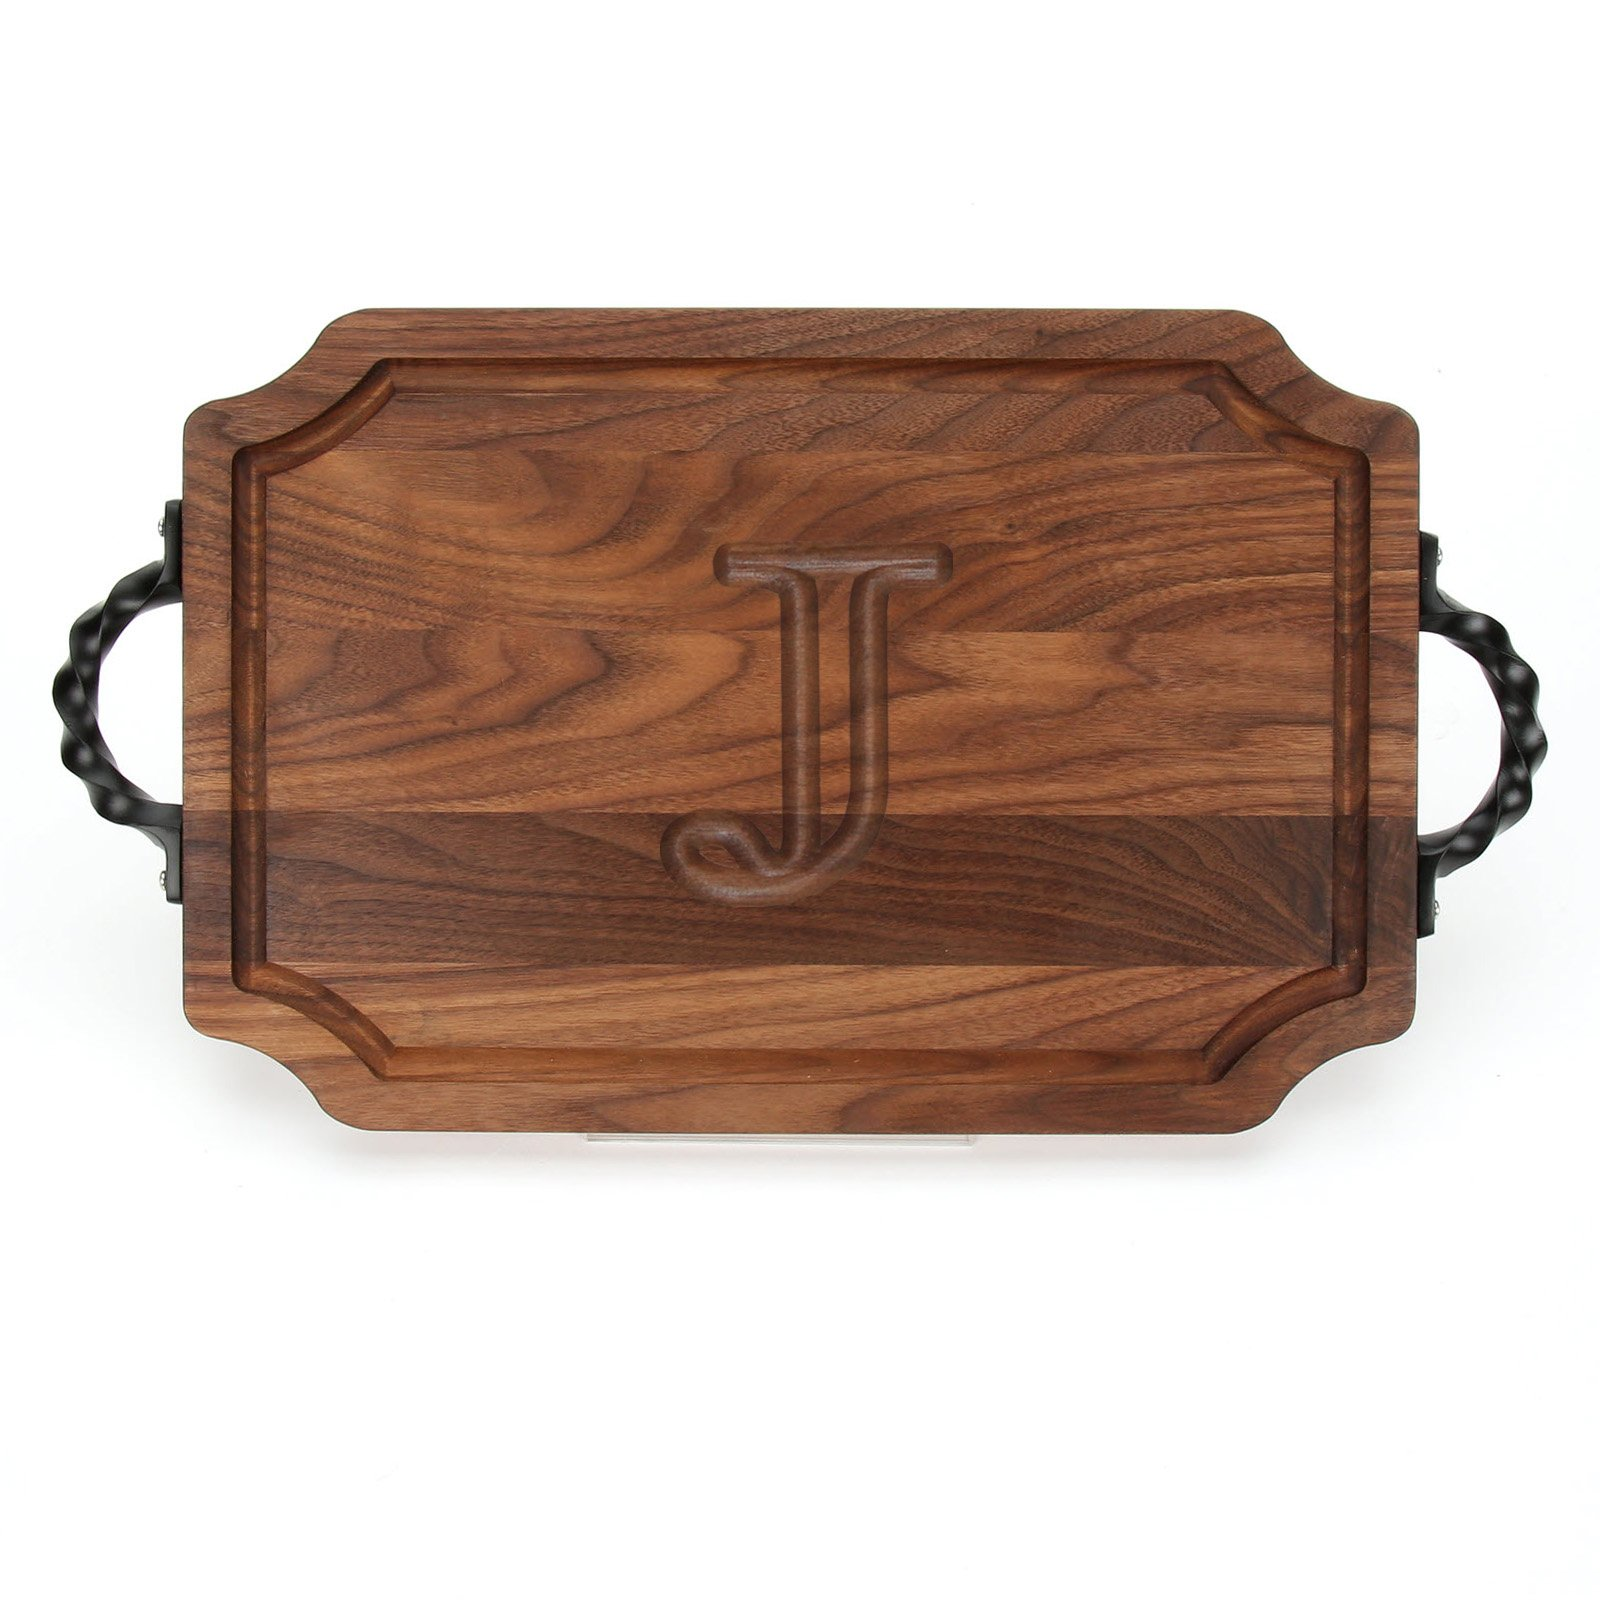 BigWood Boards W310-STWS-J Cutting Board with Twisted Square End Handle with Scalloped Corners, 12-Inch by 18-Inch by 1-Inch, Monogrammed ''J'', Walnut by BigWood Boards